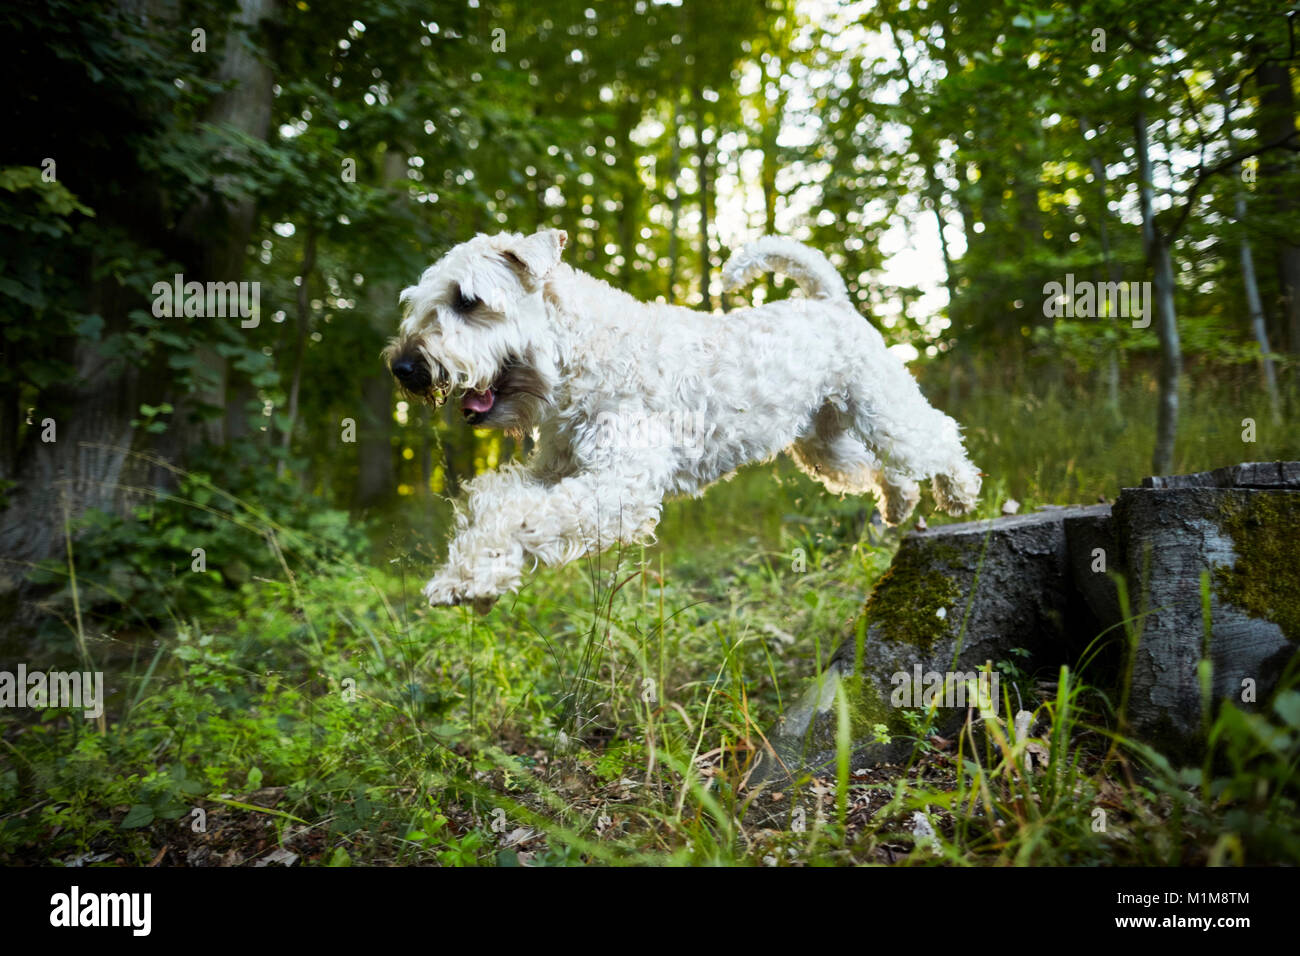 Irish Soft Coated Wheaten Terrier. Adult dog leaping from a tree stump. Germany. - Stock Image